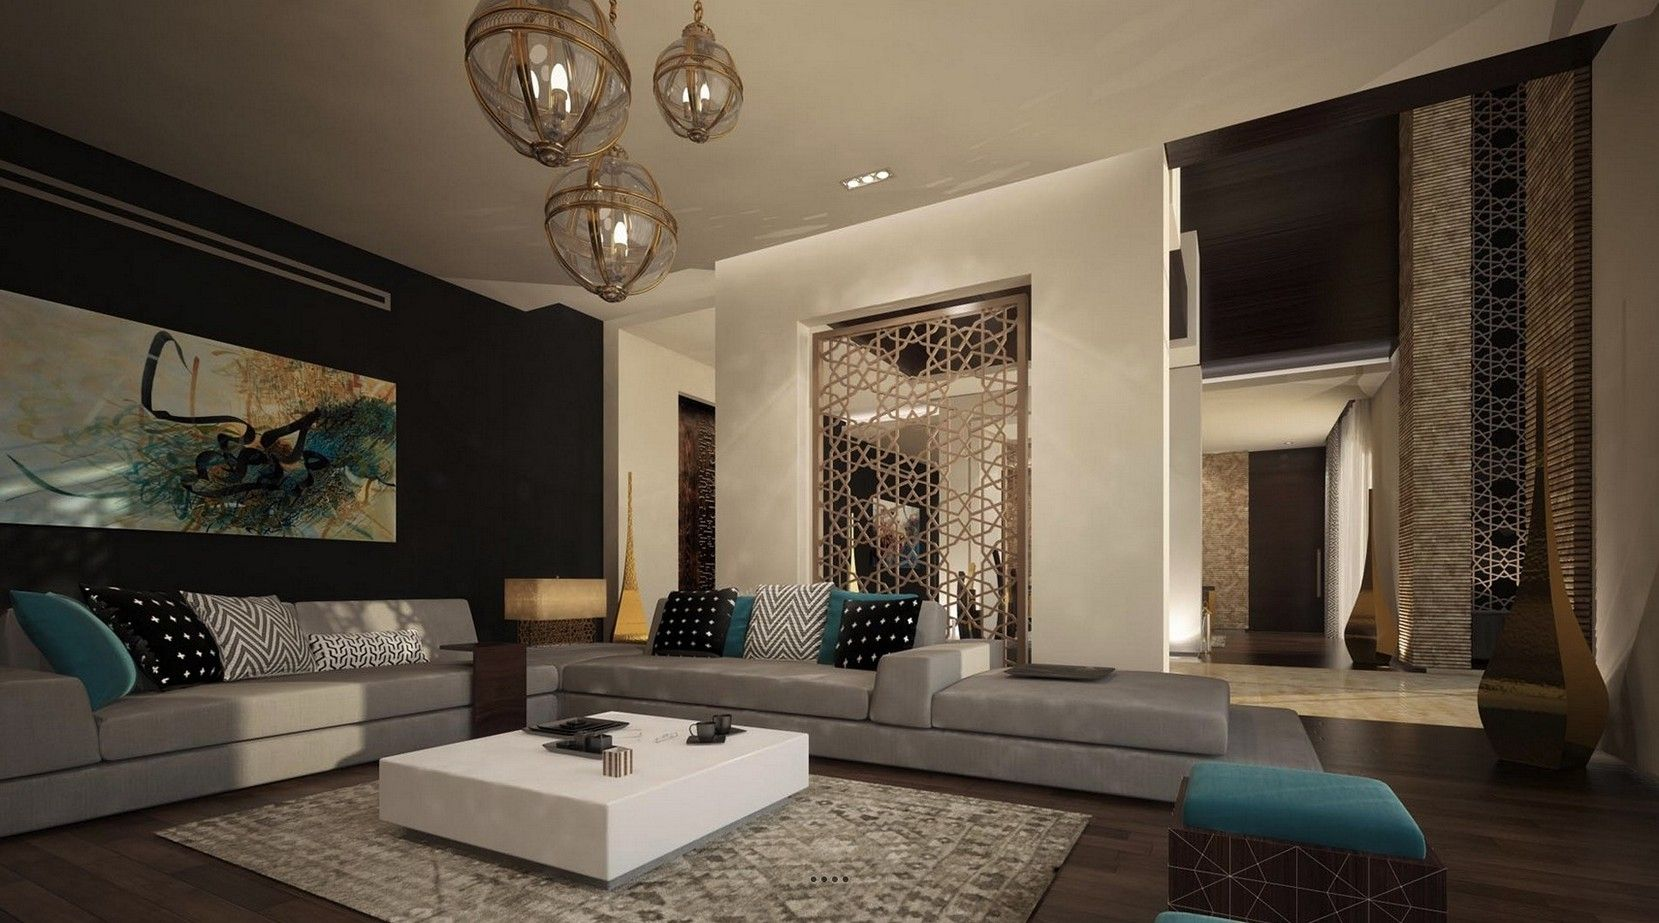 22 Open Plan Living Room Designs and Modern Interior Decorating ...